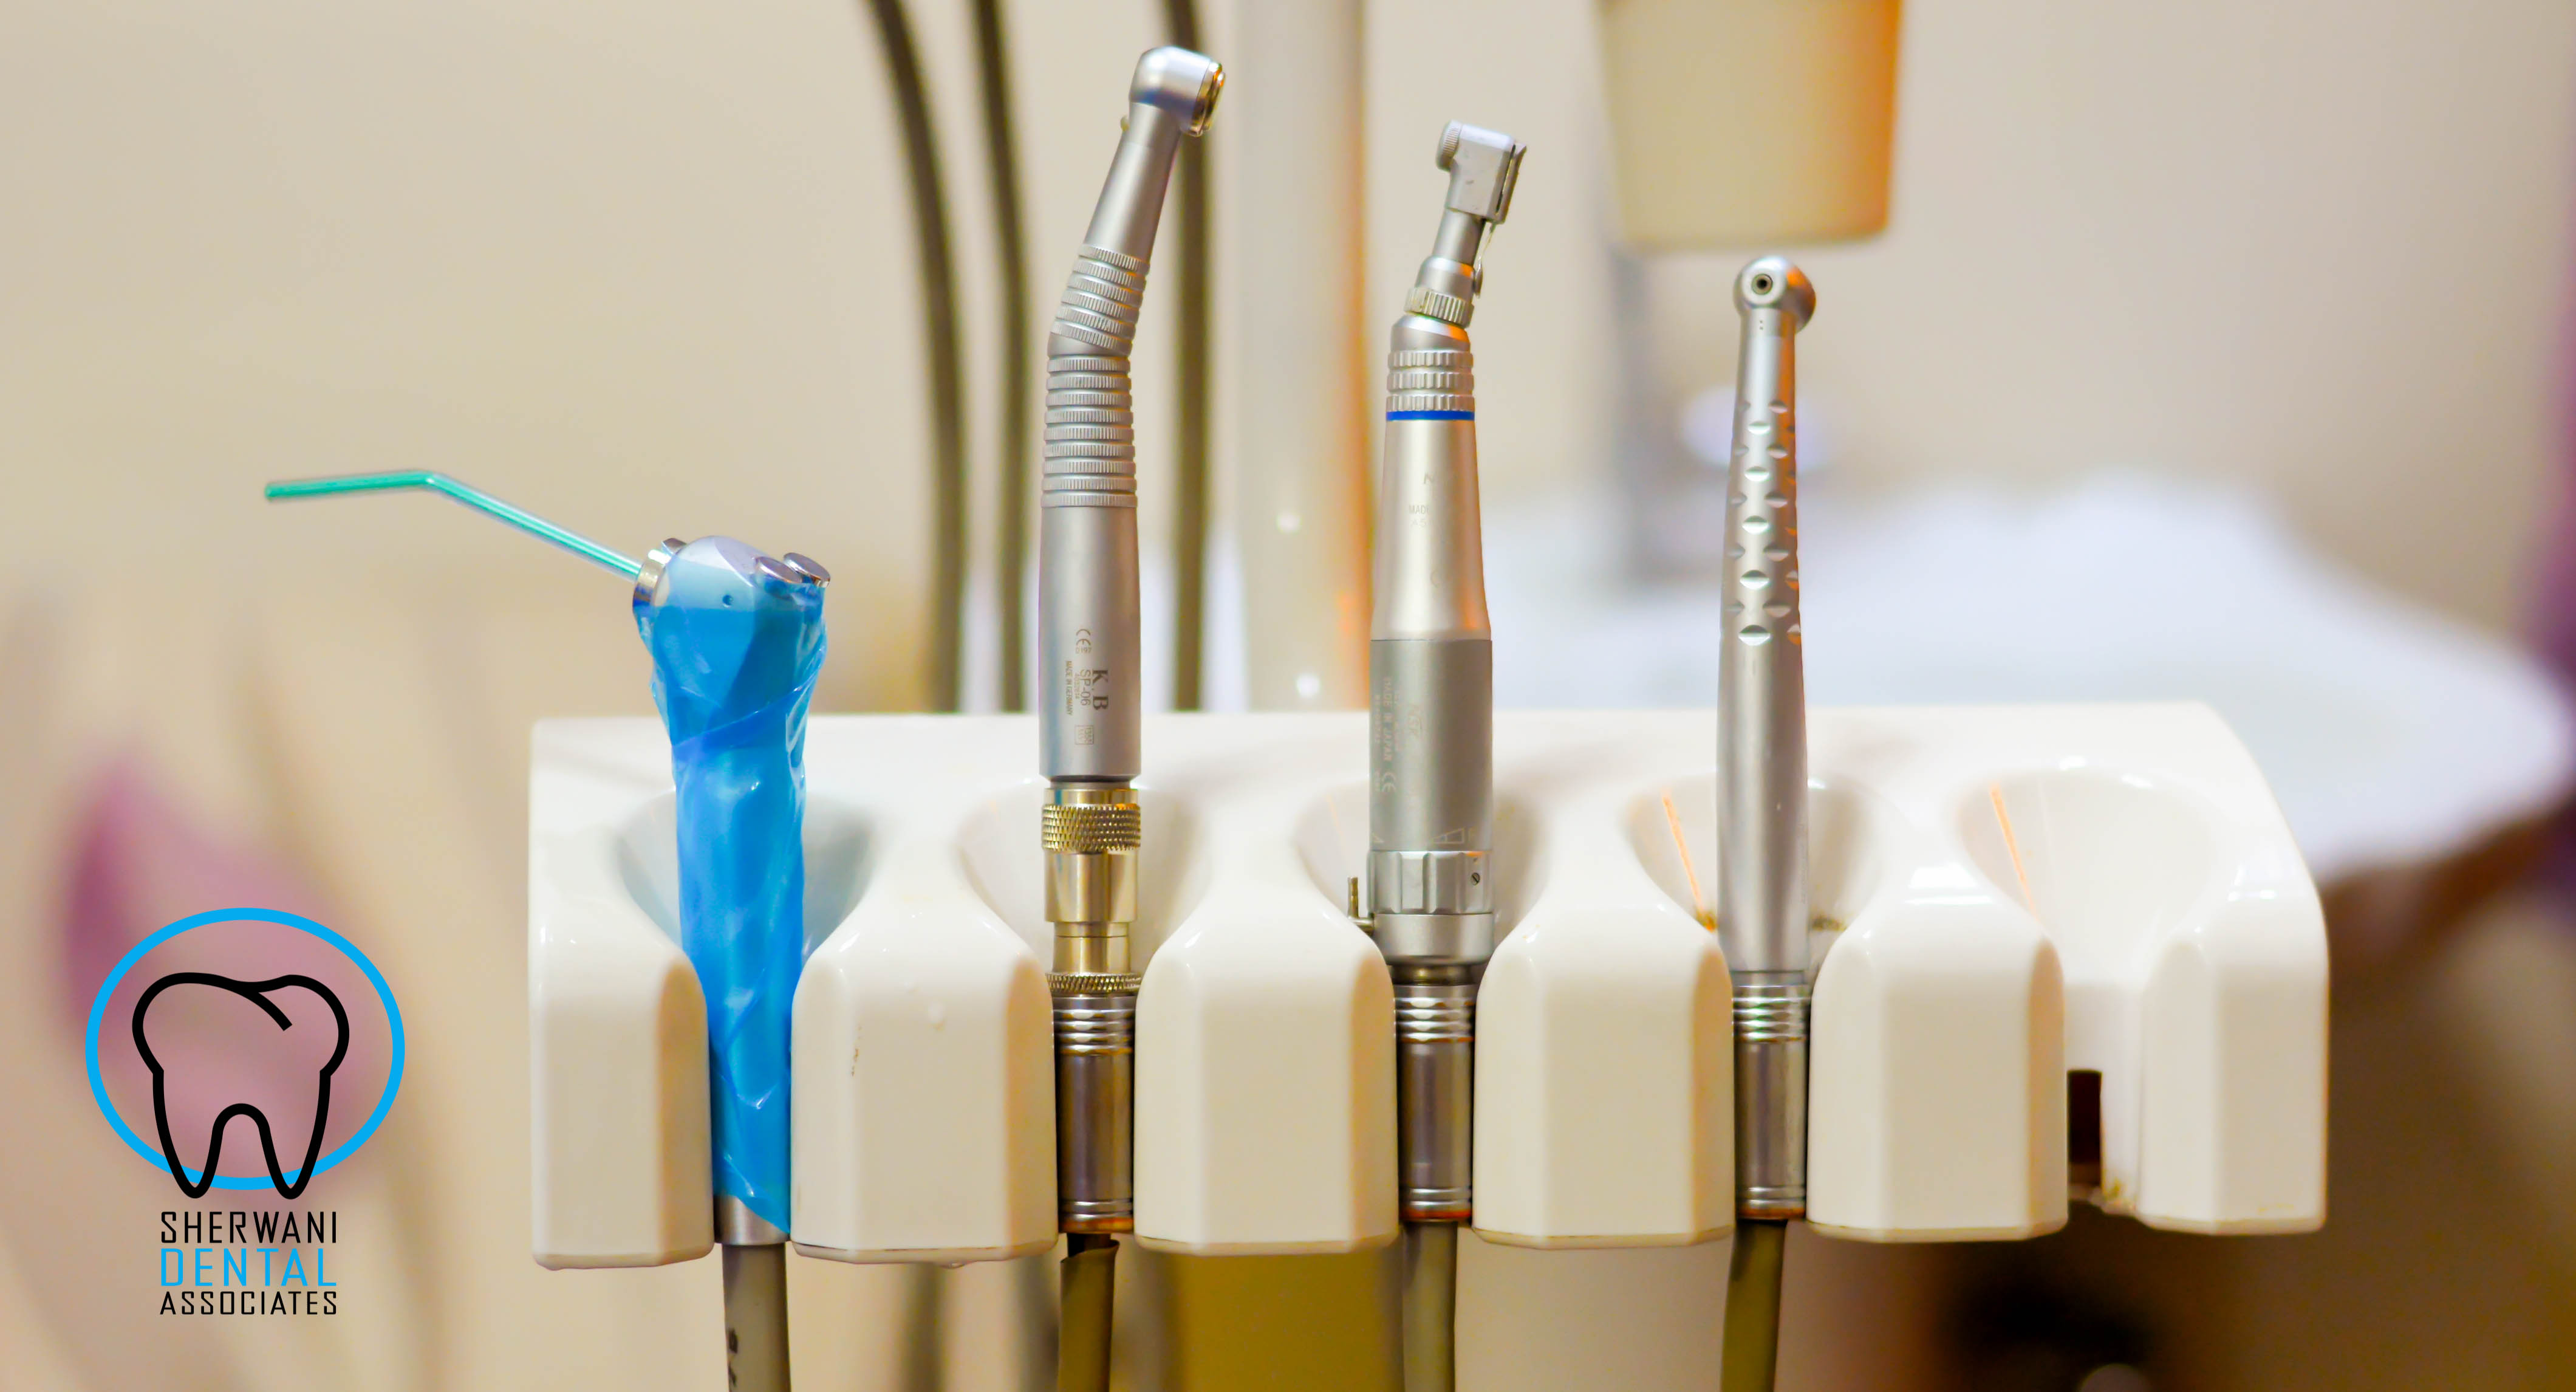 Dental Gadgets and Handpiece